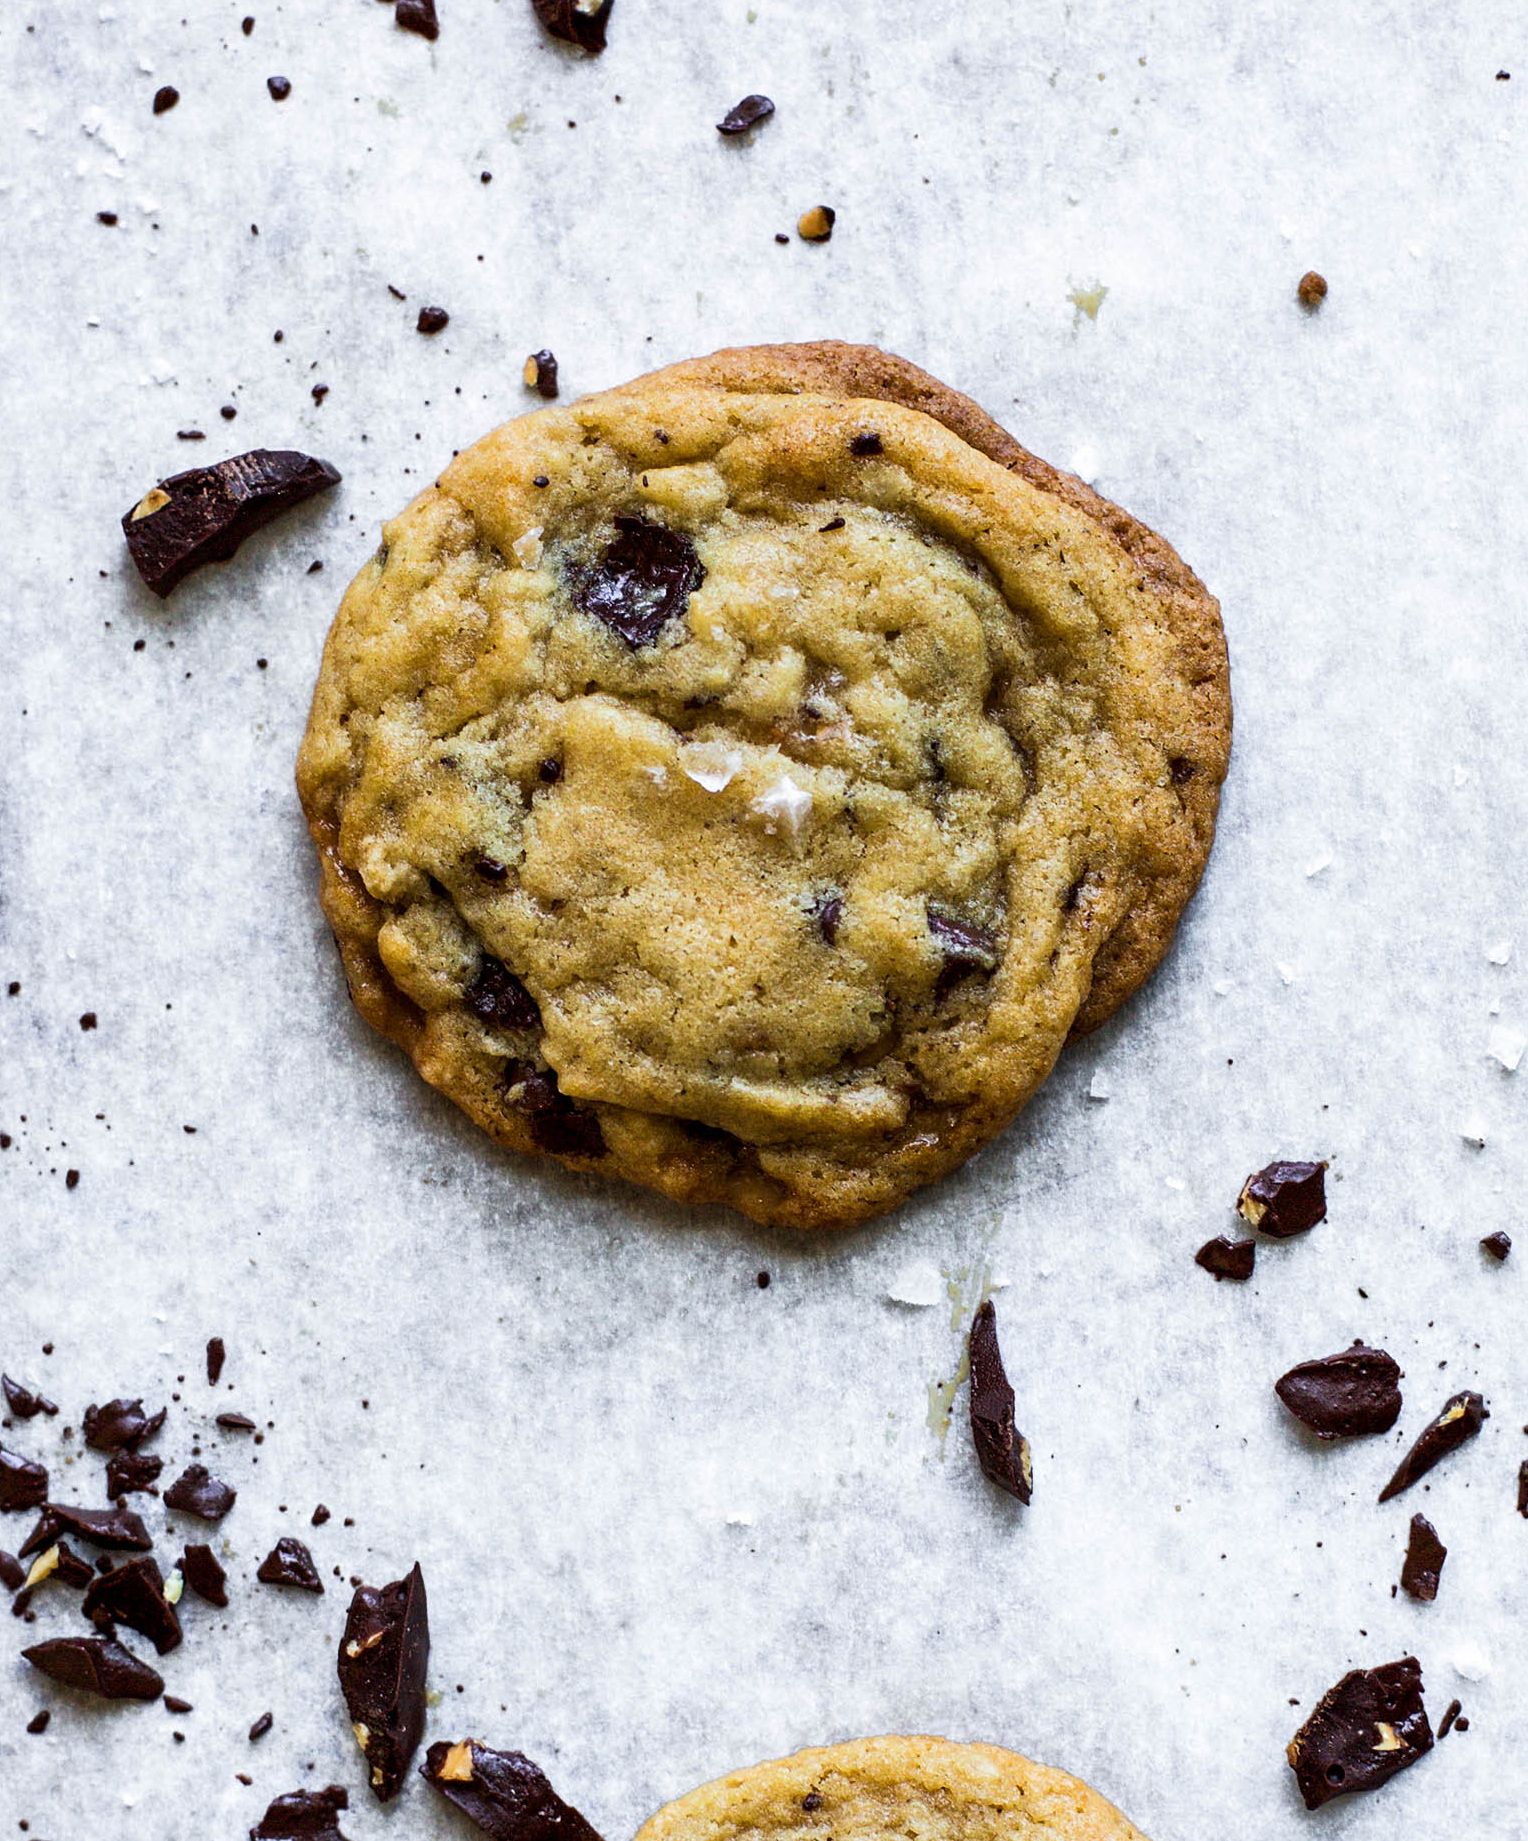 Leigh Ann Chatagnier's Chocolate Chip Toffee Cookies